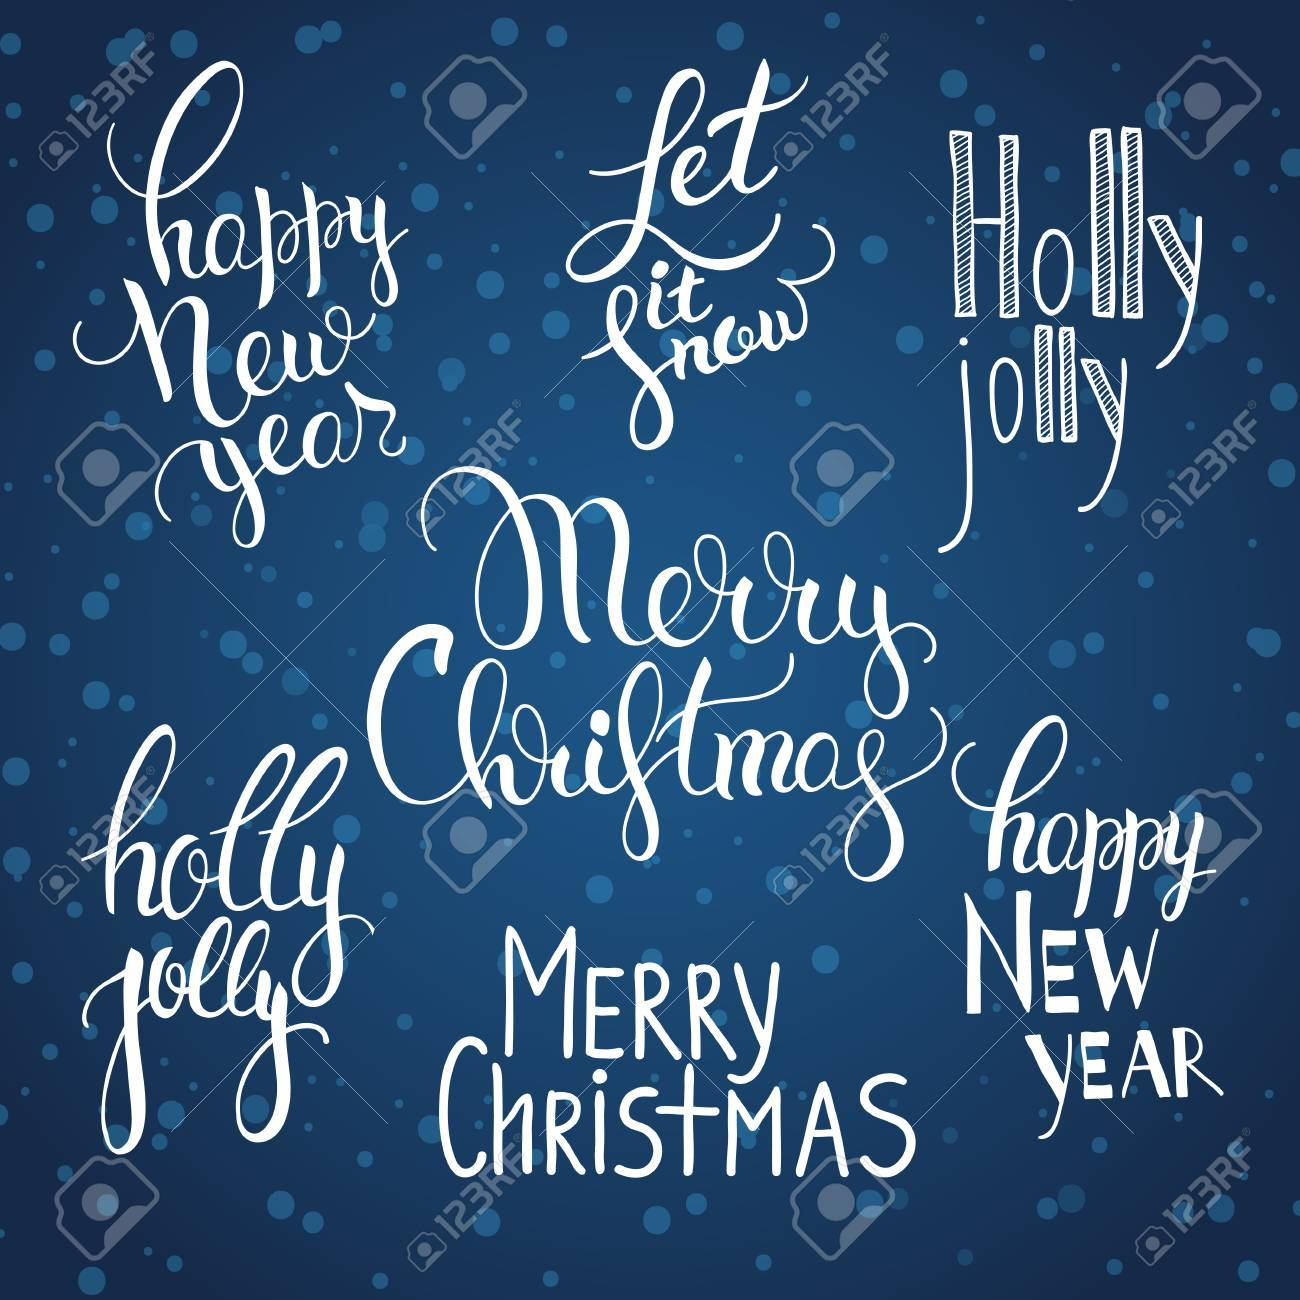 Illustration of a set of calligraphy lettering with greetings illustration of a set of calligraphy lettering with greetings merry christmas happy new year m4hsunfo